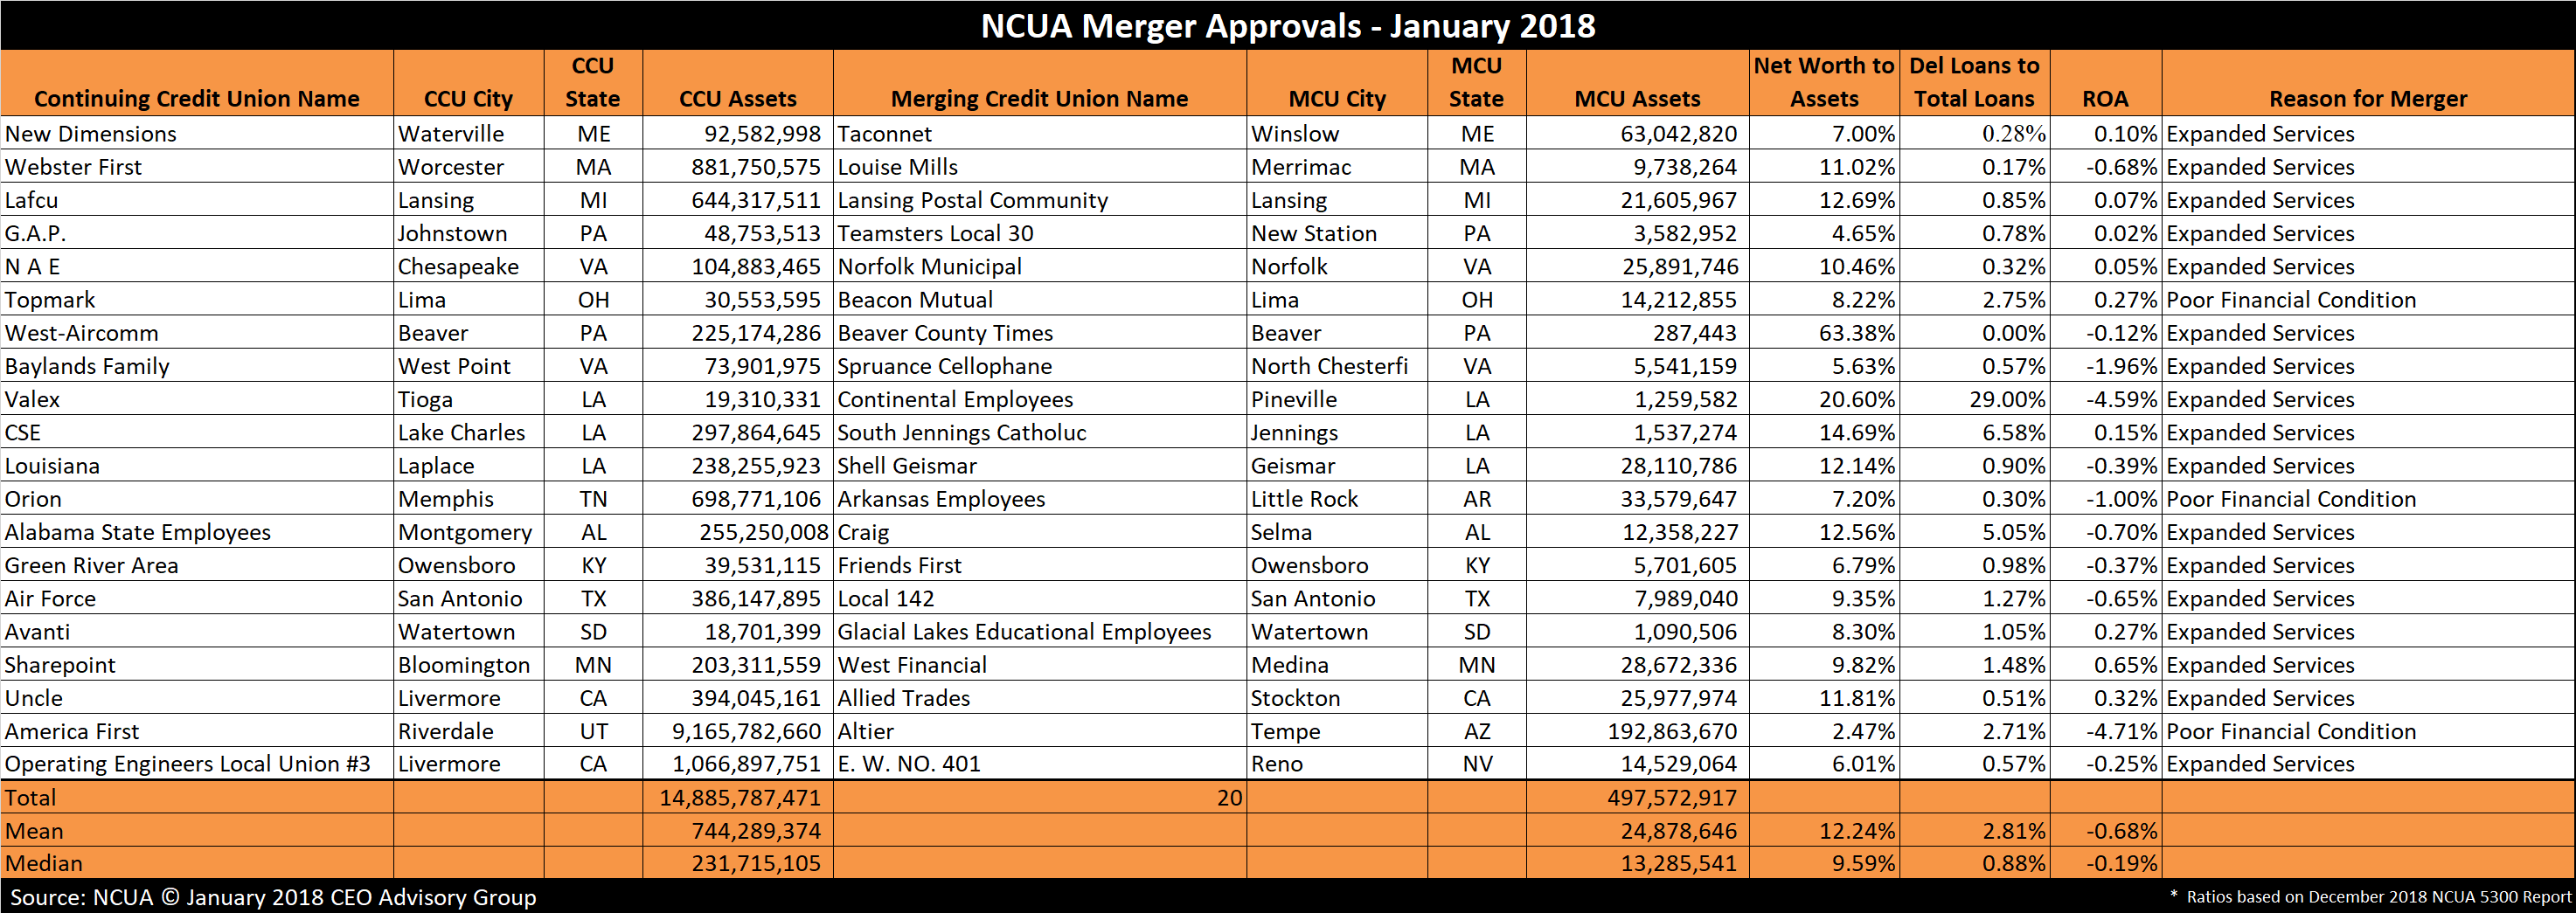 Credit Union Merger Approvals - January 2018